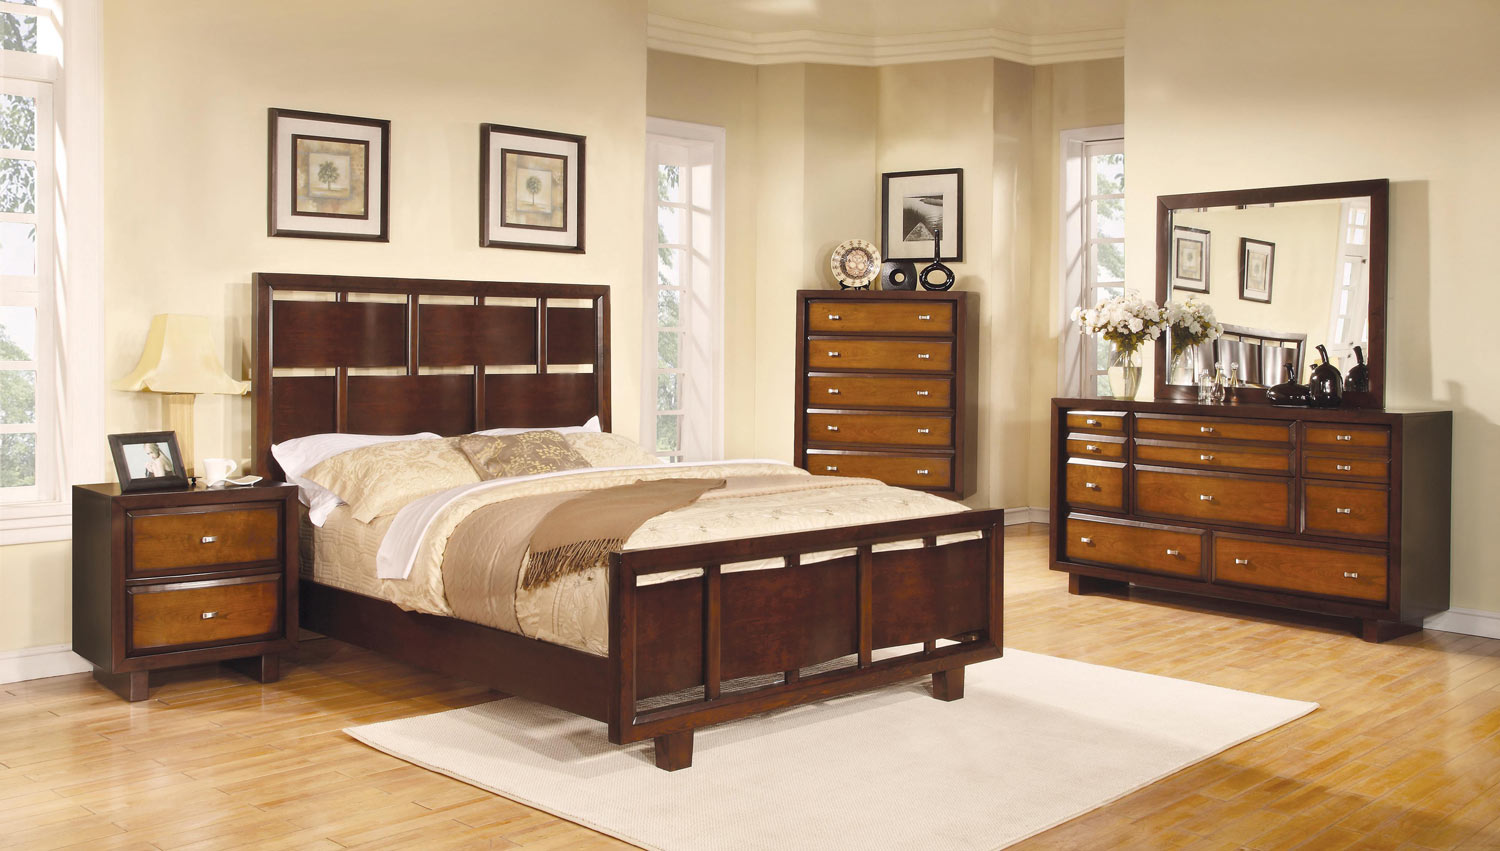 Coaster Nelson Bedroom Collection - Oak/Brown/Cherry